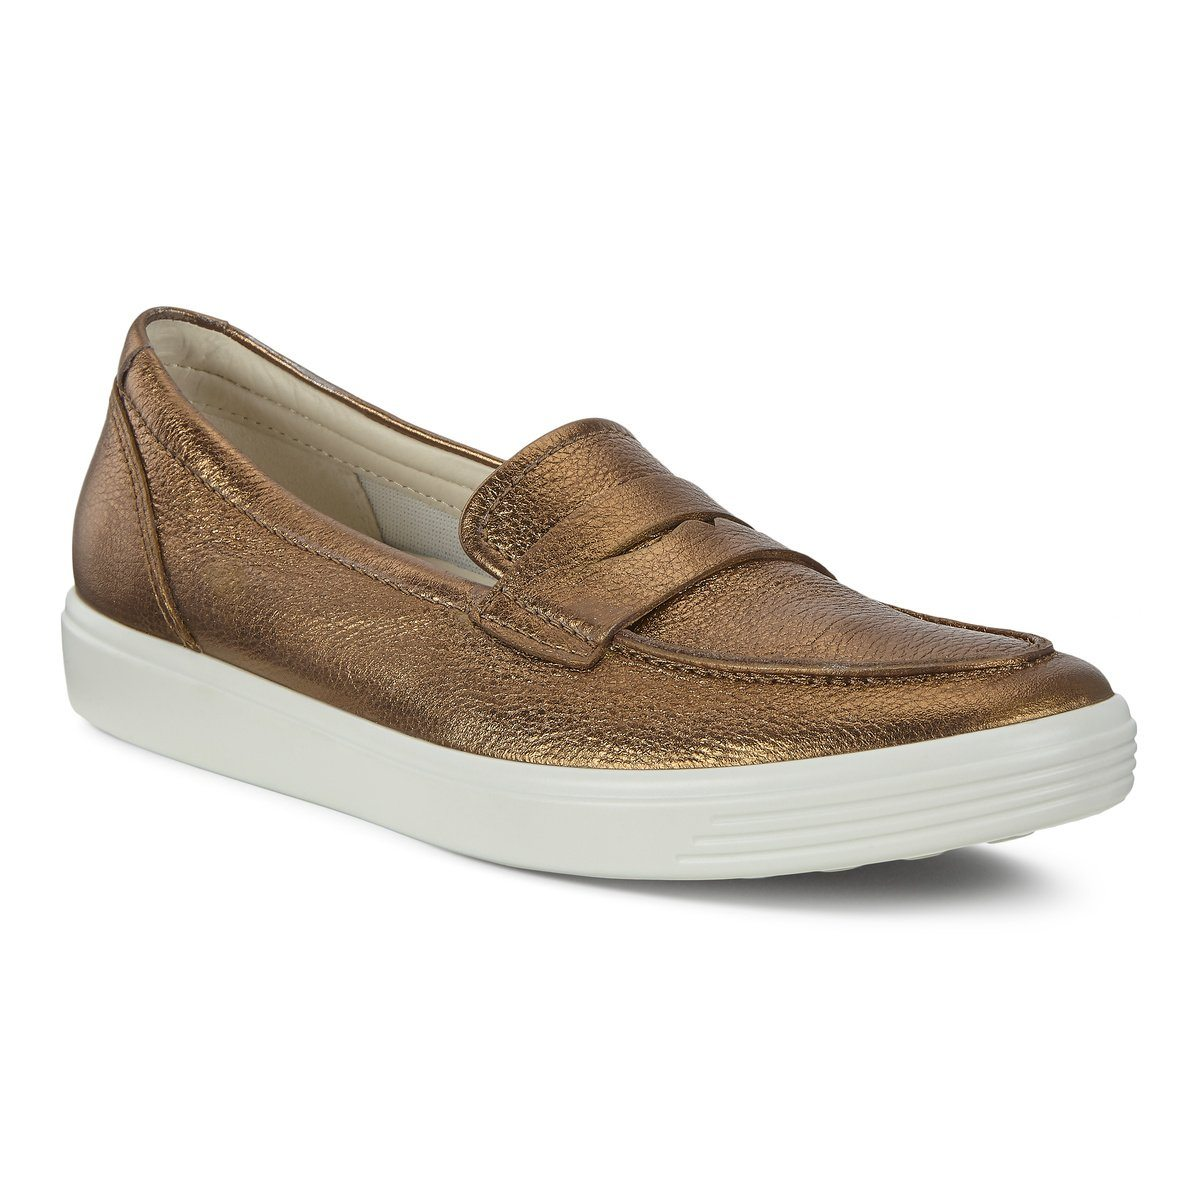 Soft 7 Slip on - Womens - Bronze Lyra Metallic Active Leisure ECCO